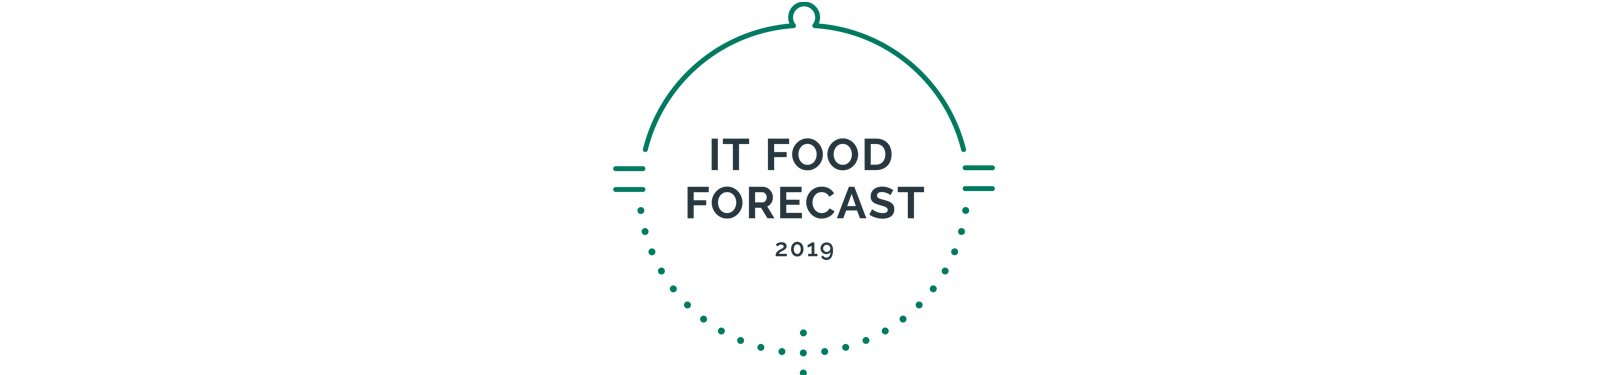 it-food-forecast-research.jpg (2)